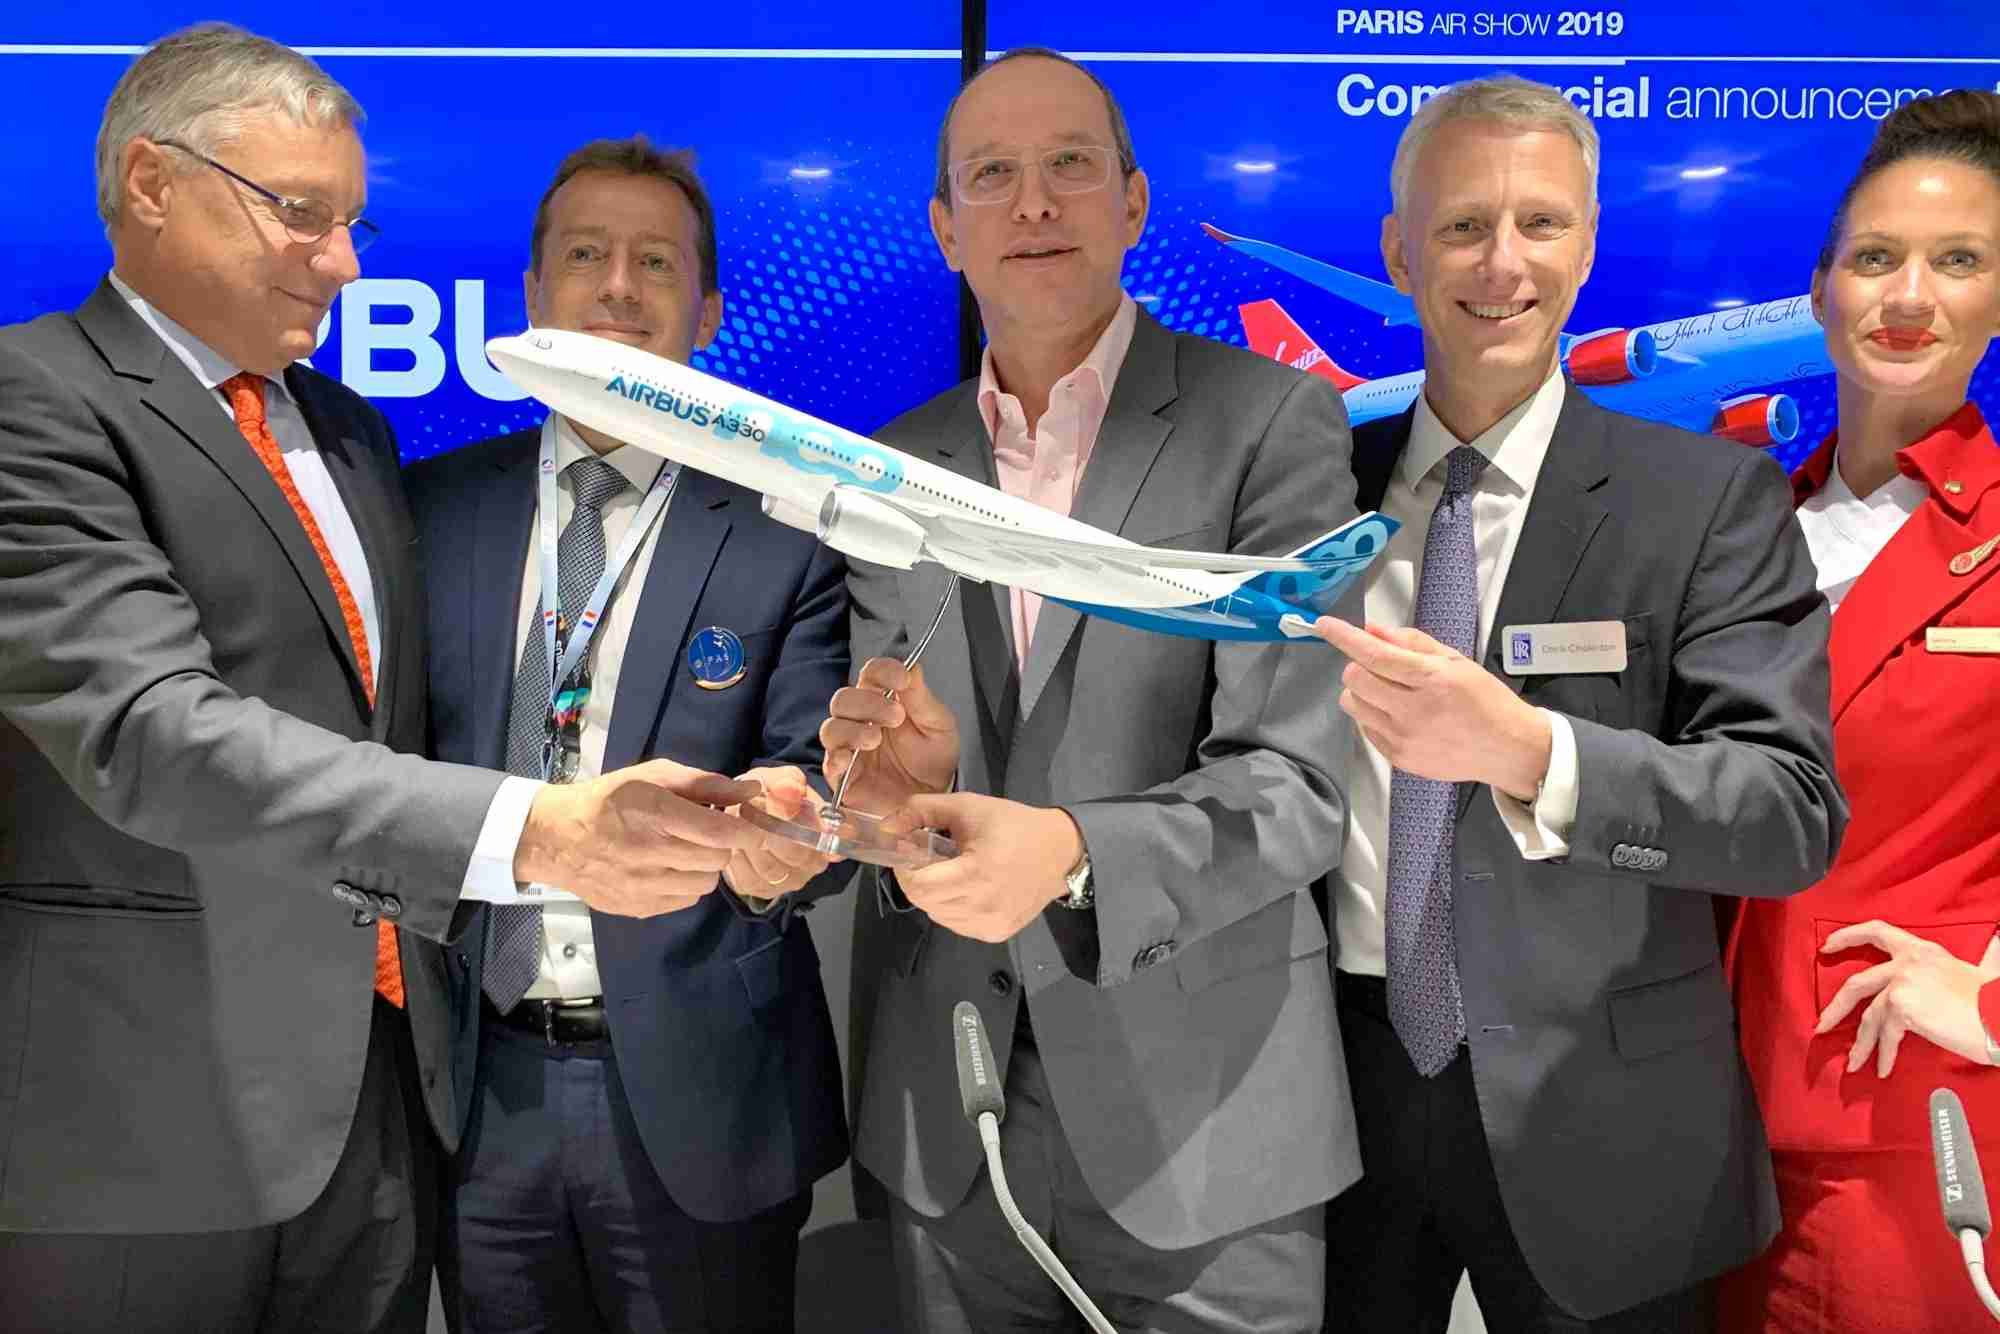 Airbus, Virgin Atlantic and Rolls-Royce executives announce an A330neo order at the 2019 Paris Air Show. Photo by Zach Honig / The Points Guy.